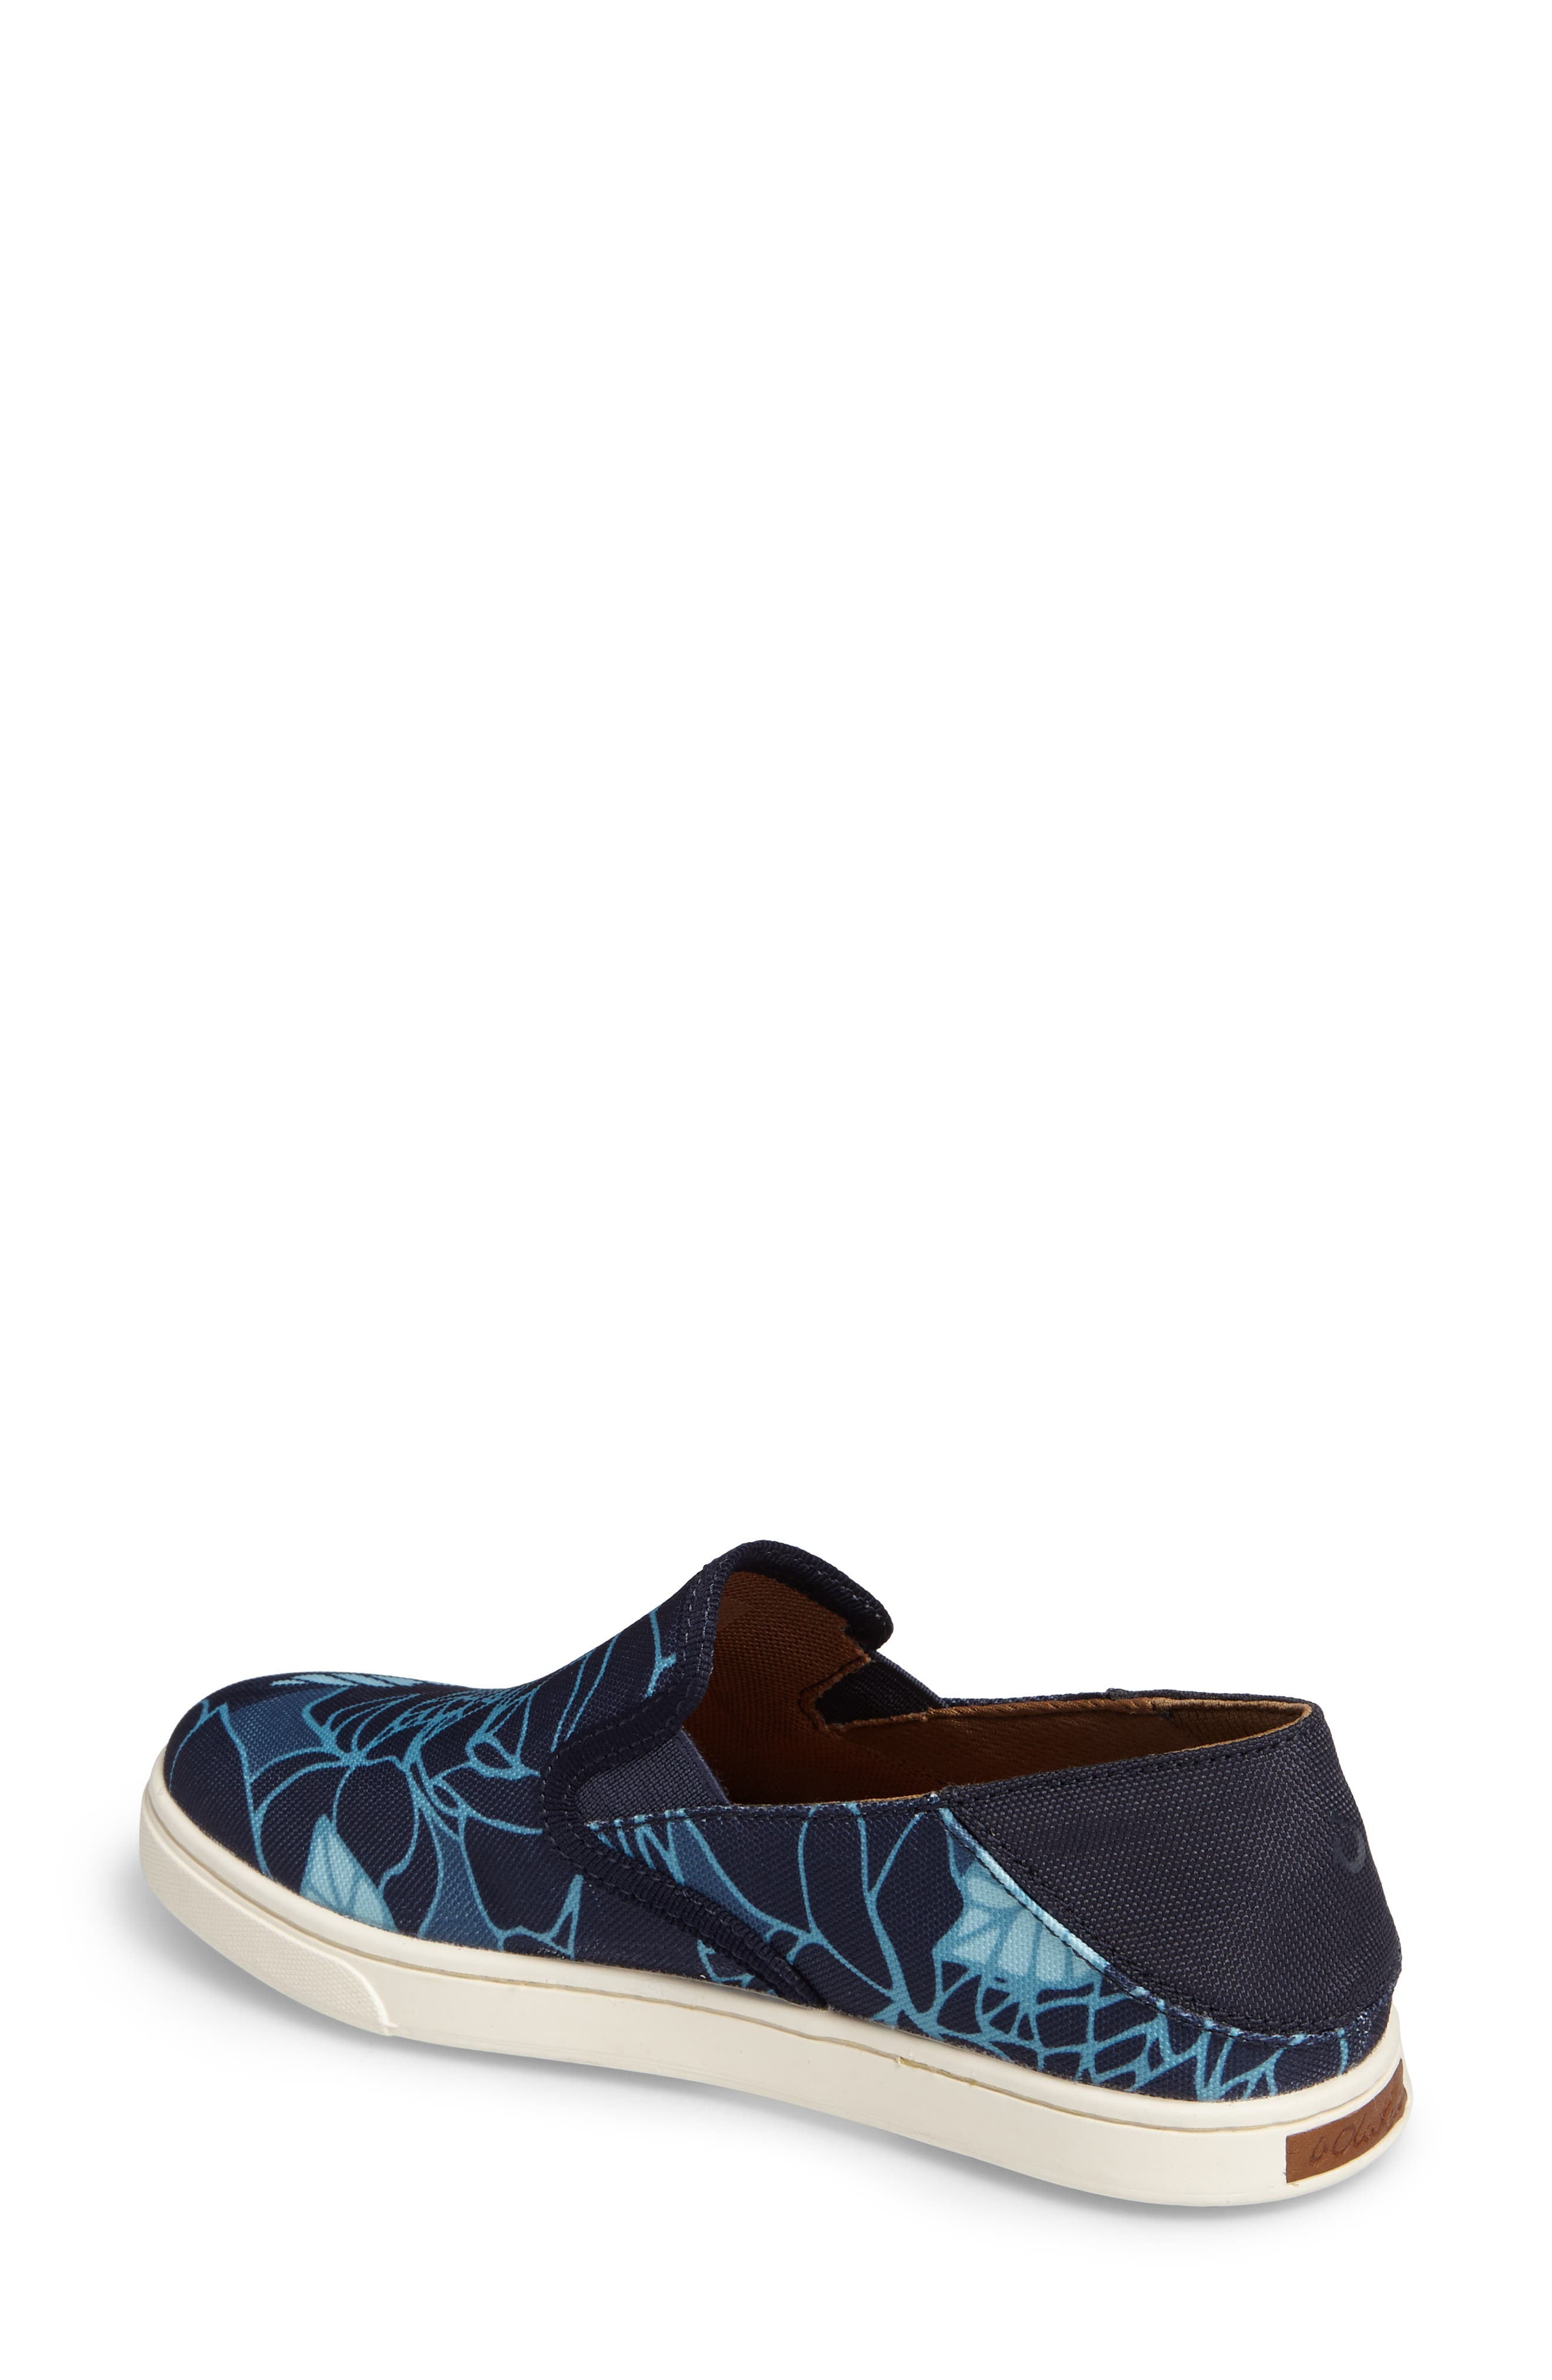 Pehuea Print Slip-On Sneaker,                             Alternate thumbnail 2, color,                             TRENCH BLUE/ STORMY BLUE